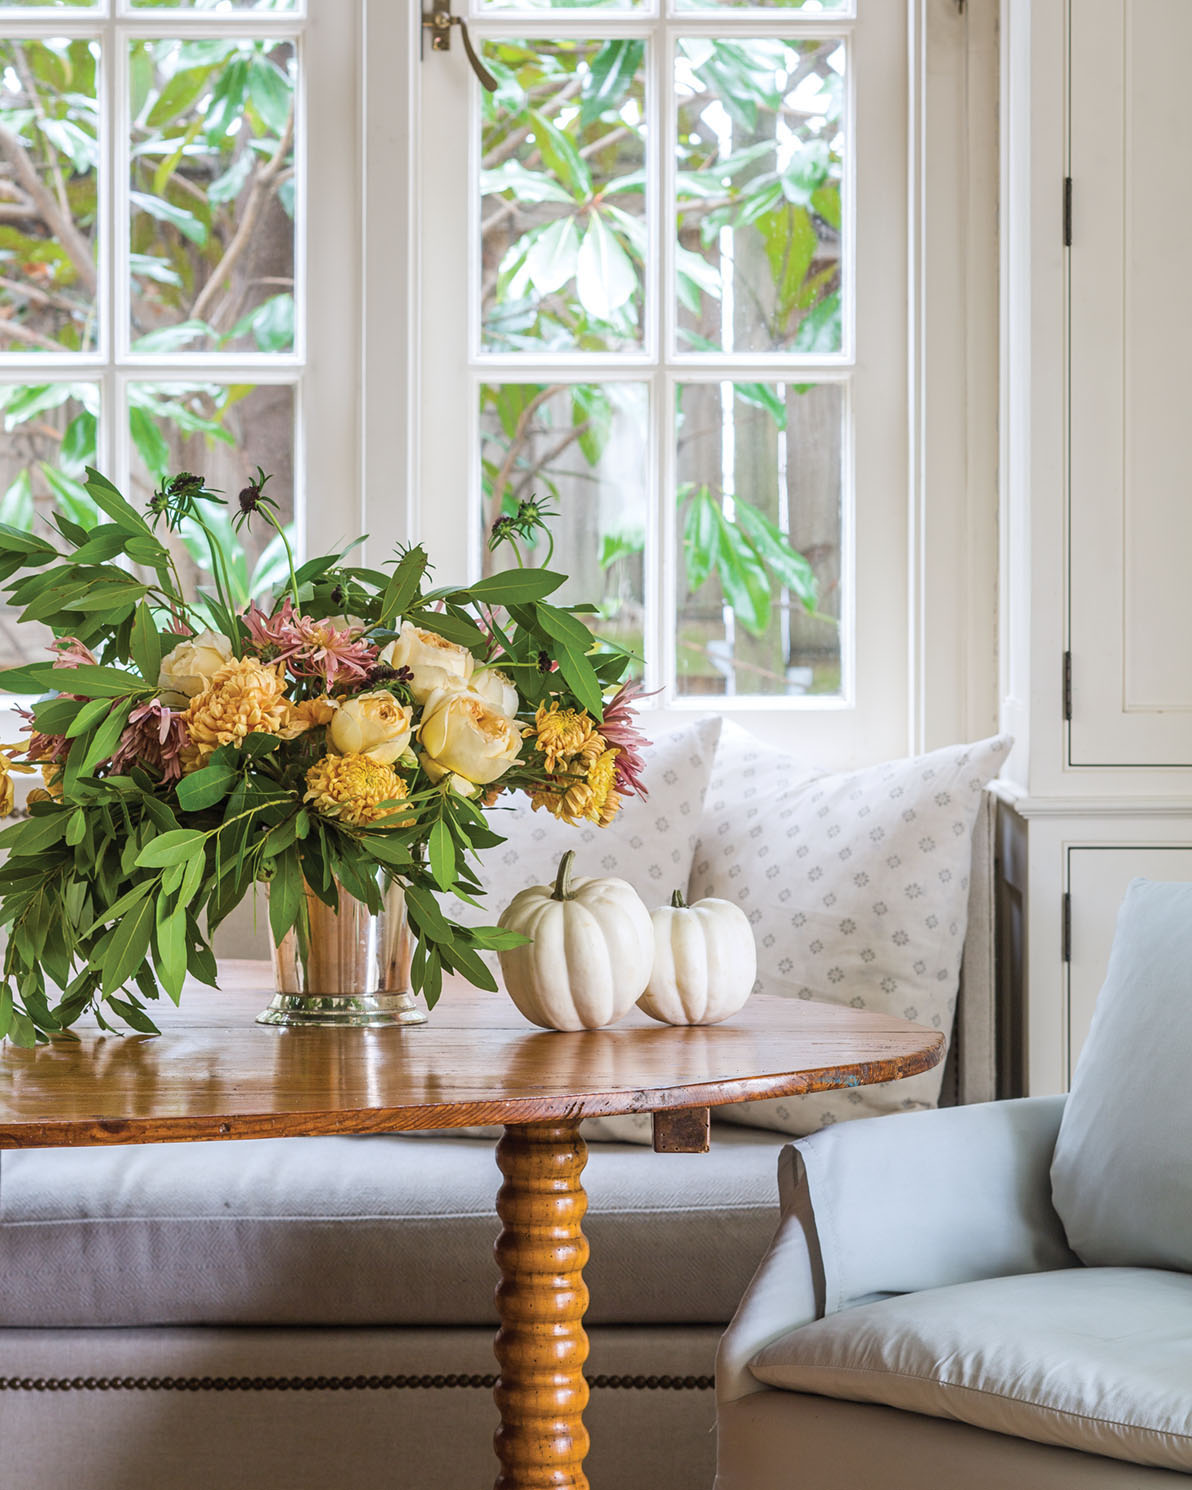 autumn arrangement on a breakfast table, displayed with two small white pumpkins. Seating includes an upholstered chair in pale blue and an upholstered banquette nestled into an window alcove